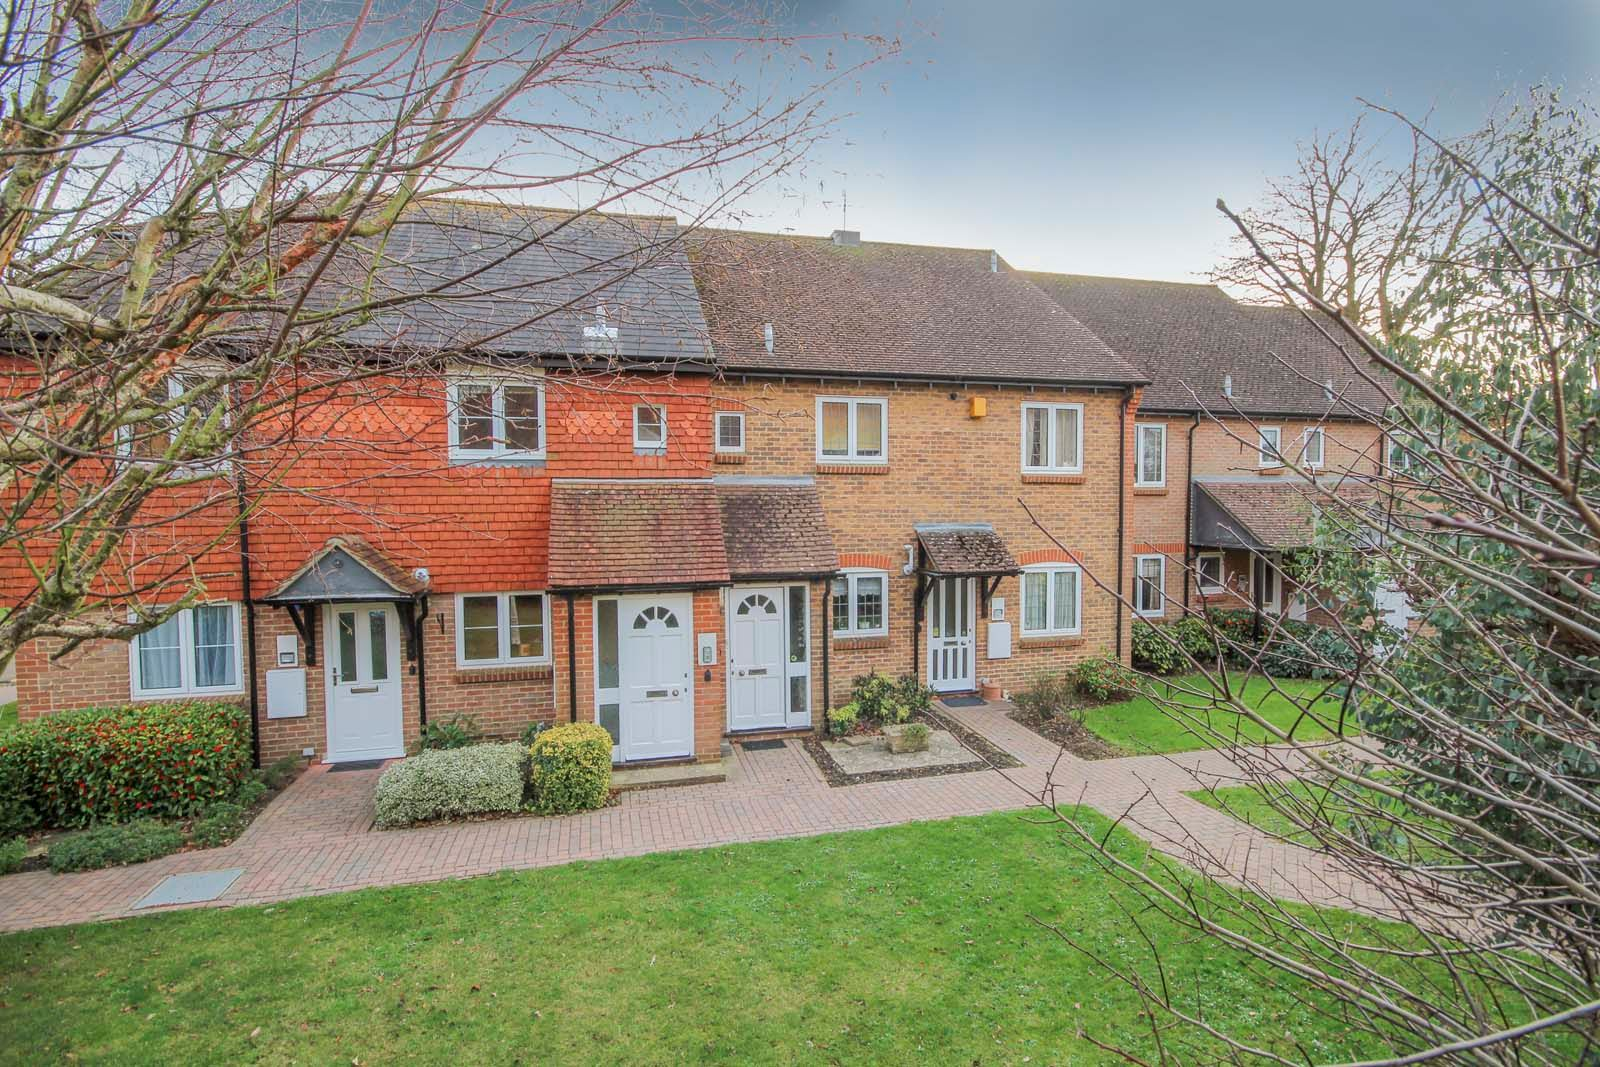 2 bed  for sale in Sea Lane Close  - Property Image 1